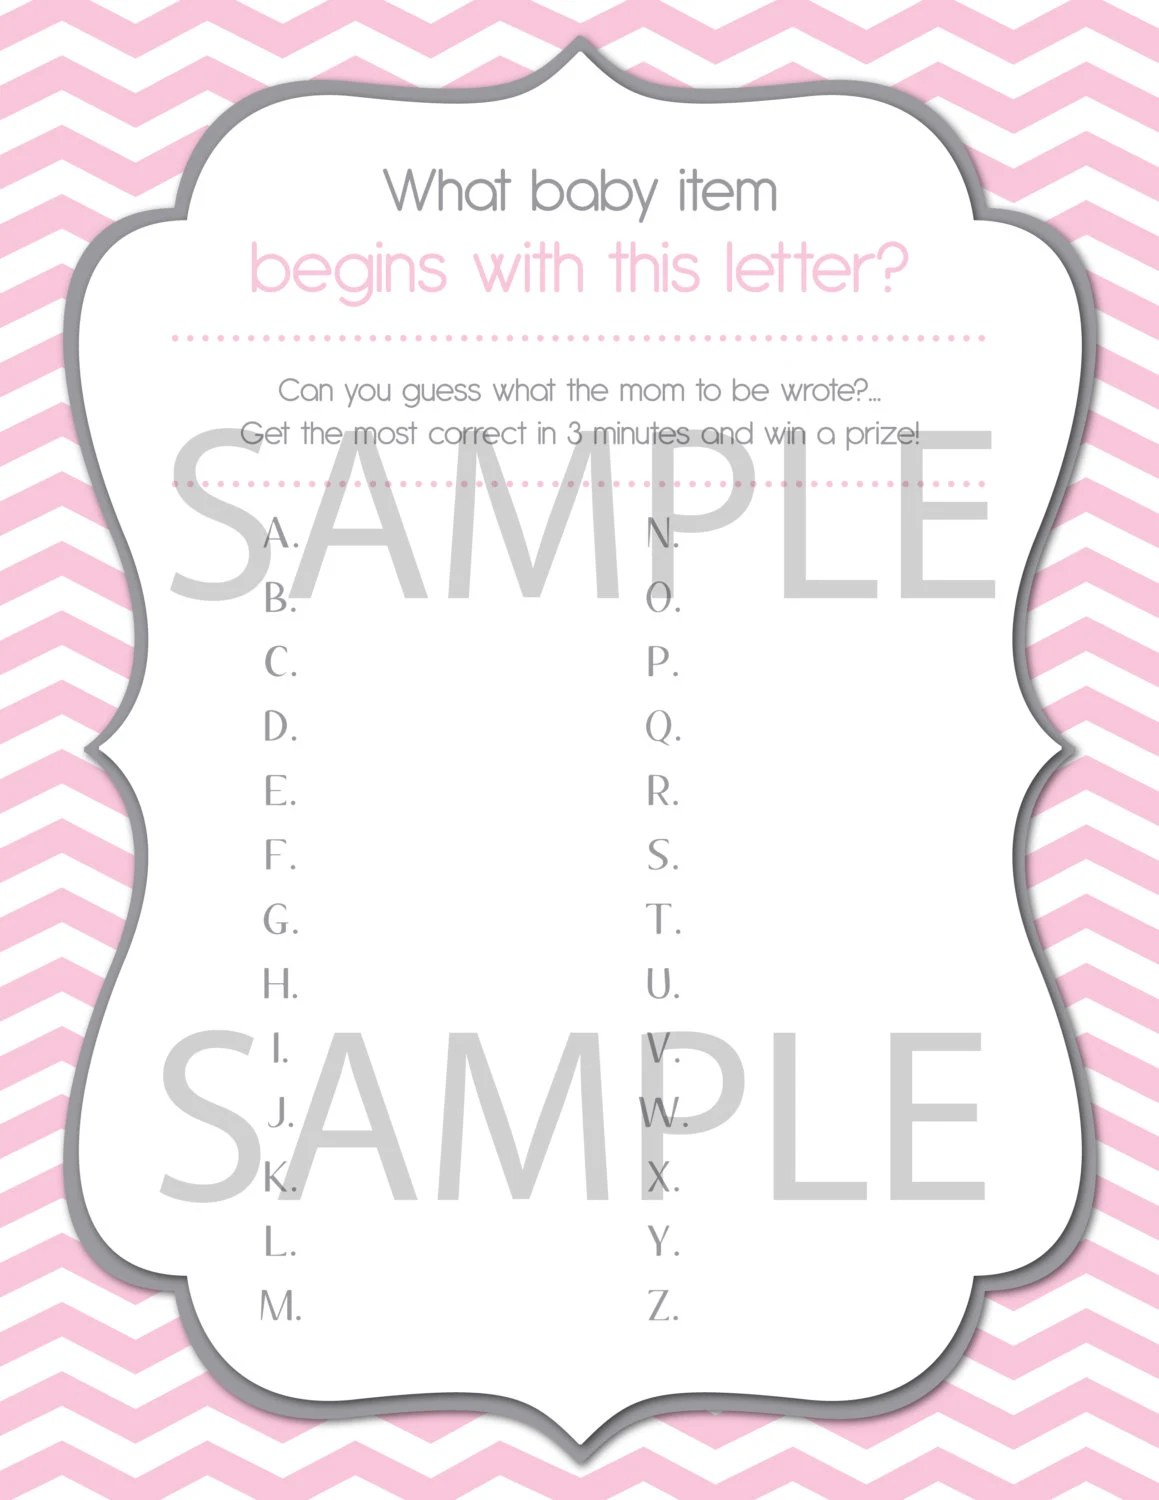 Baby Shower Game Printable A Z Baby Letter By Heatherscreations11